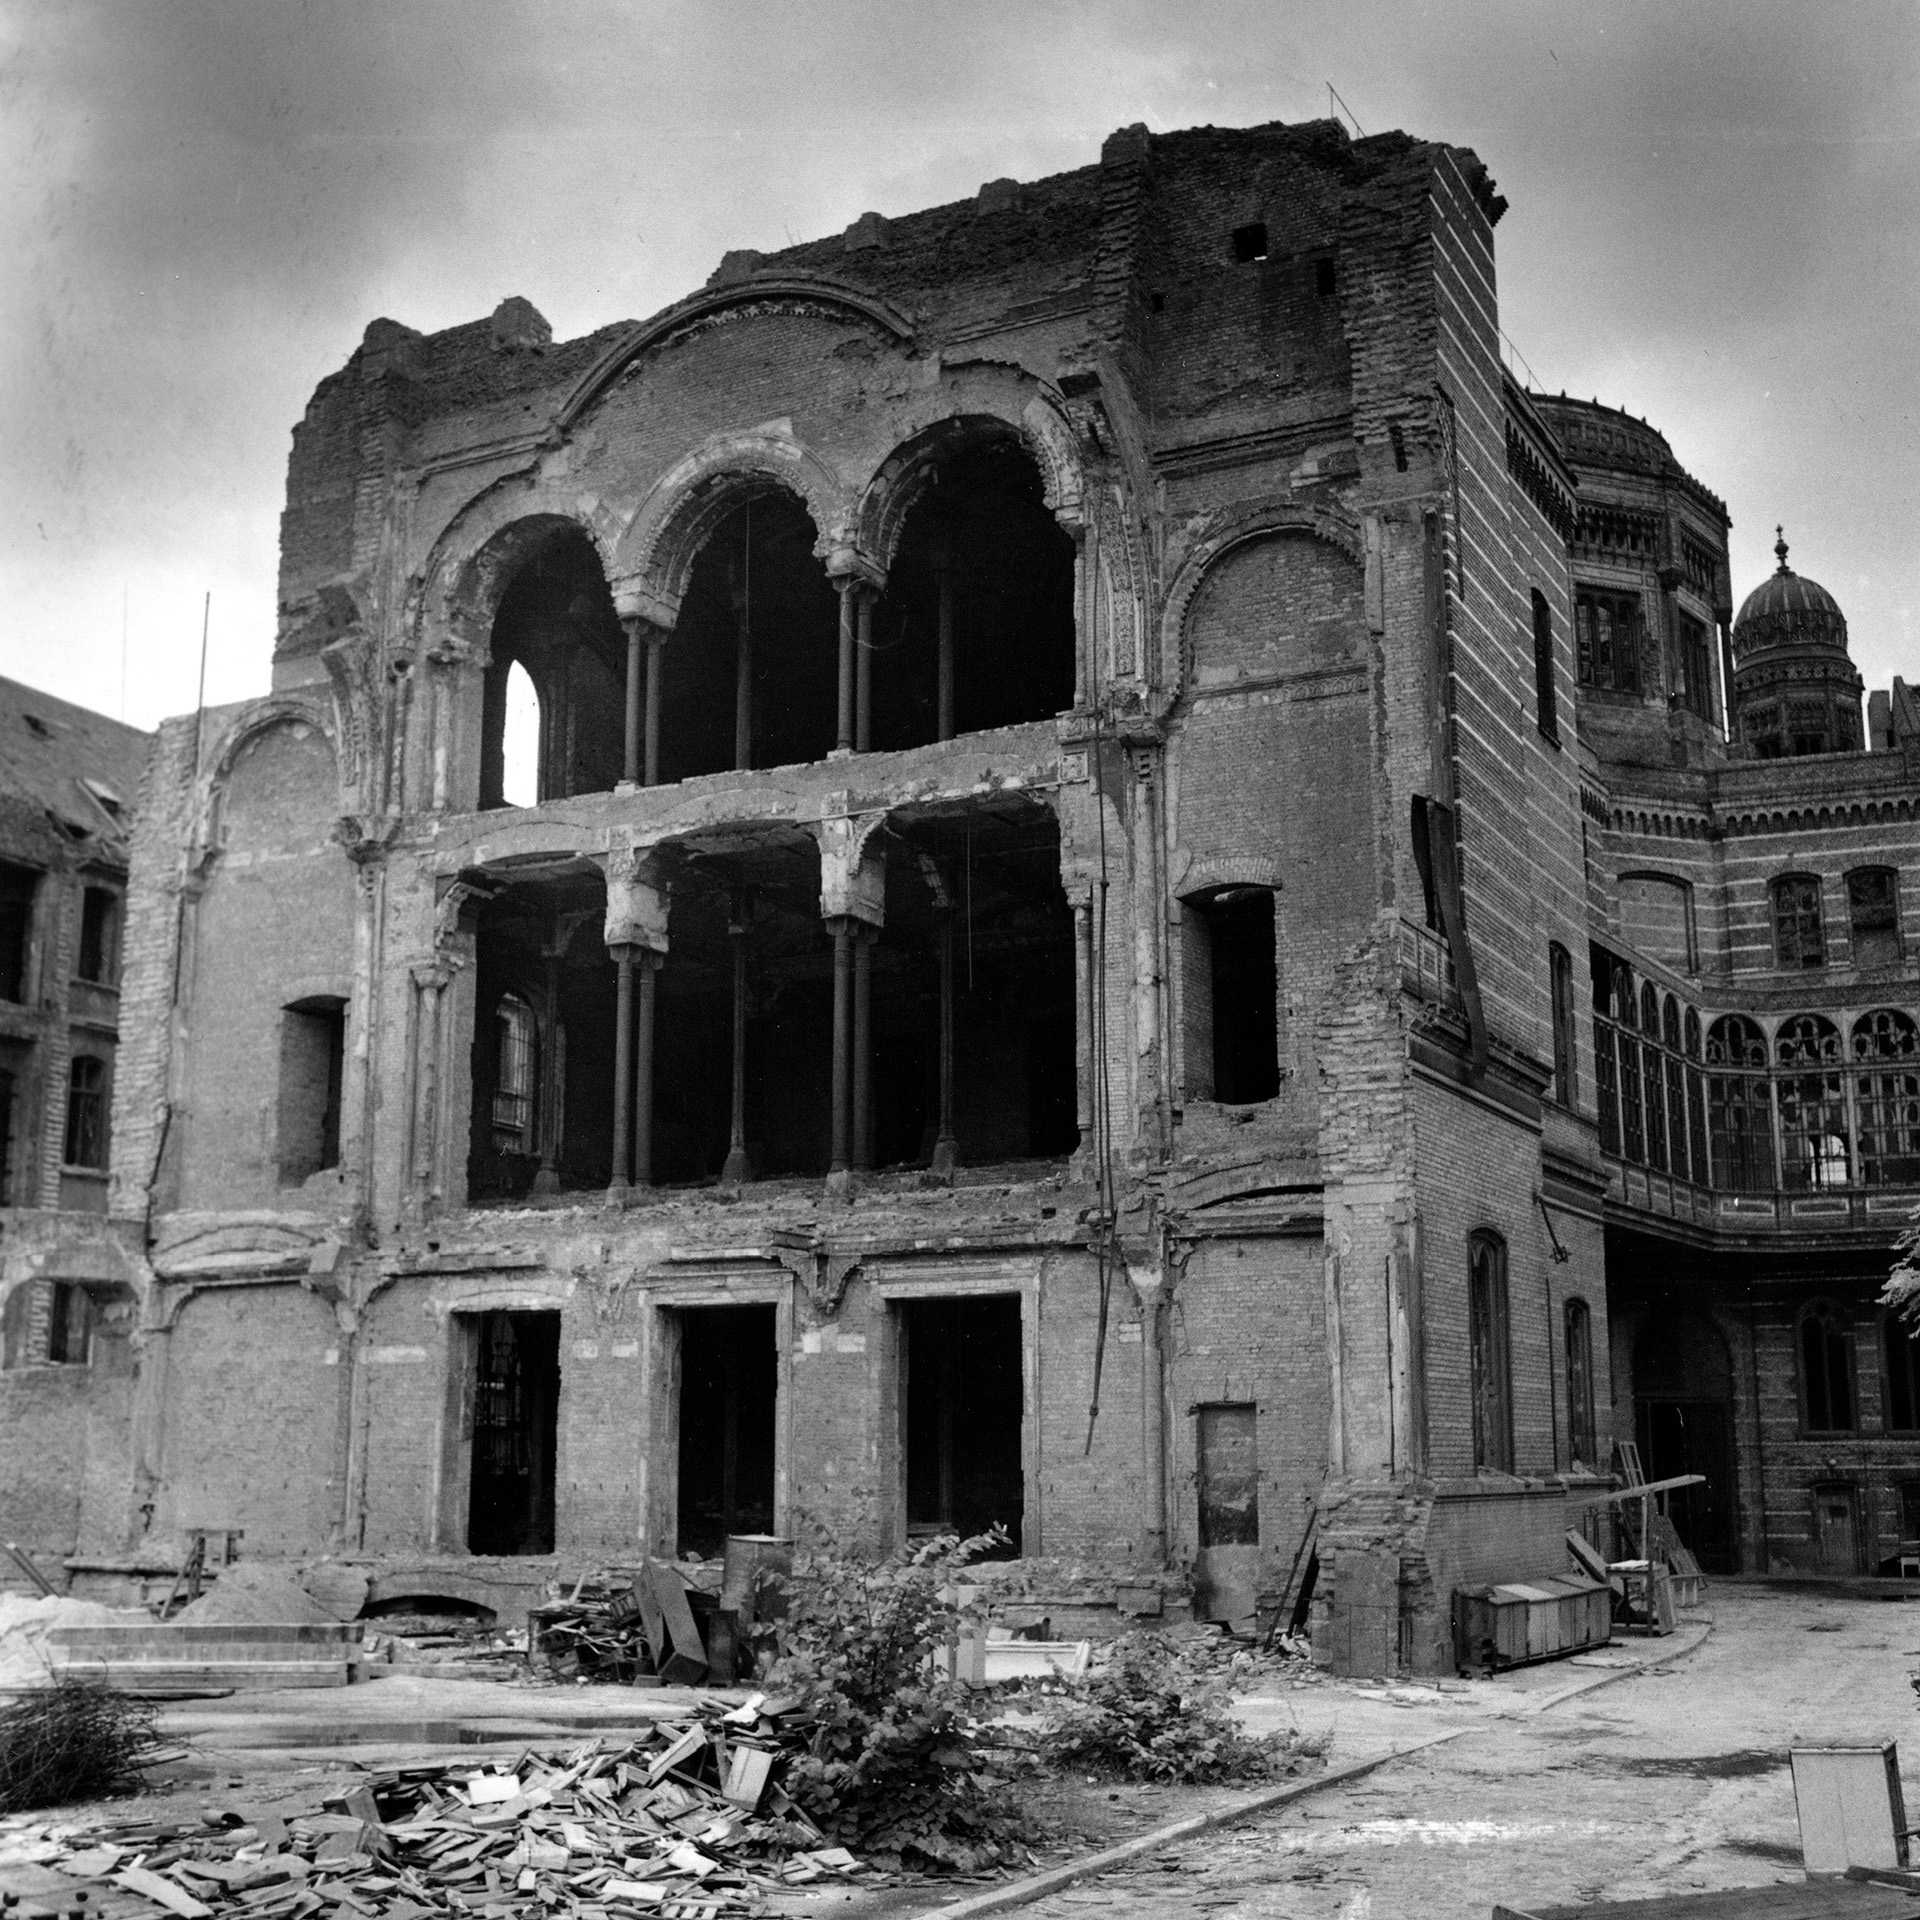 The Oranienburger Strasse Synagogue that was burnt by the Nazis on Kristallnacht. (Credit: AP/REX/Shutterstock)